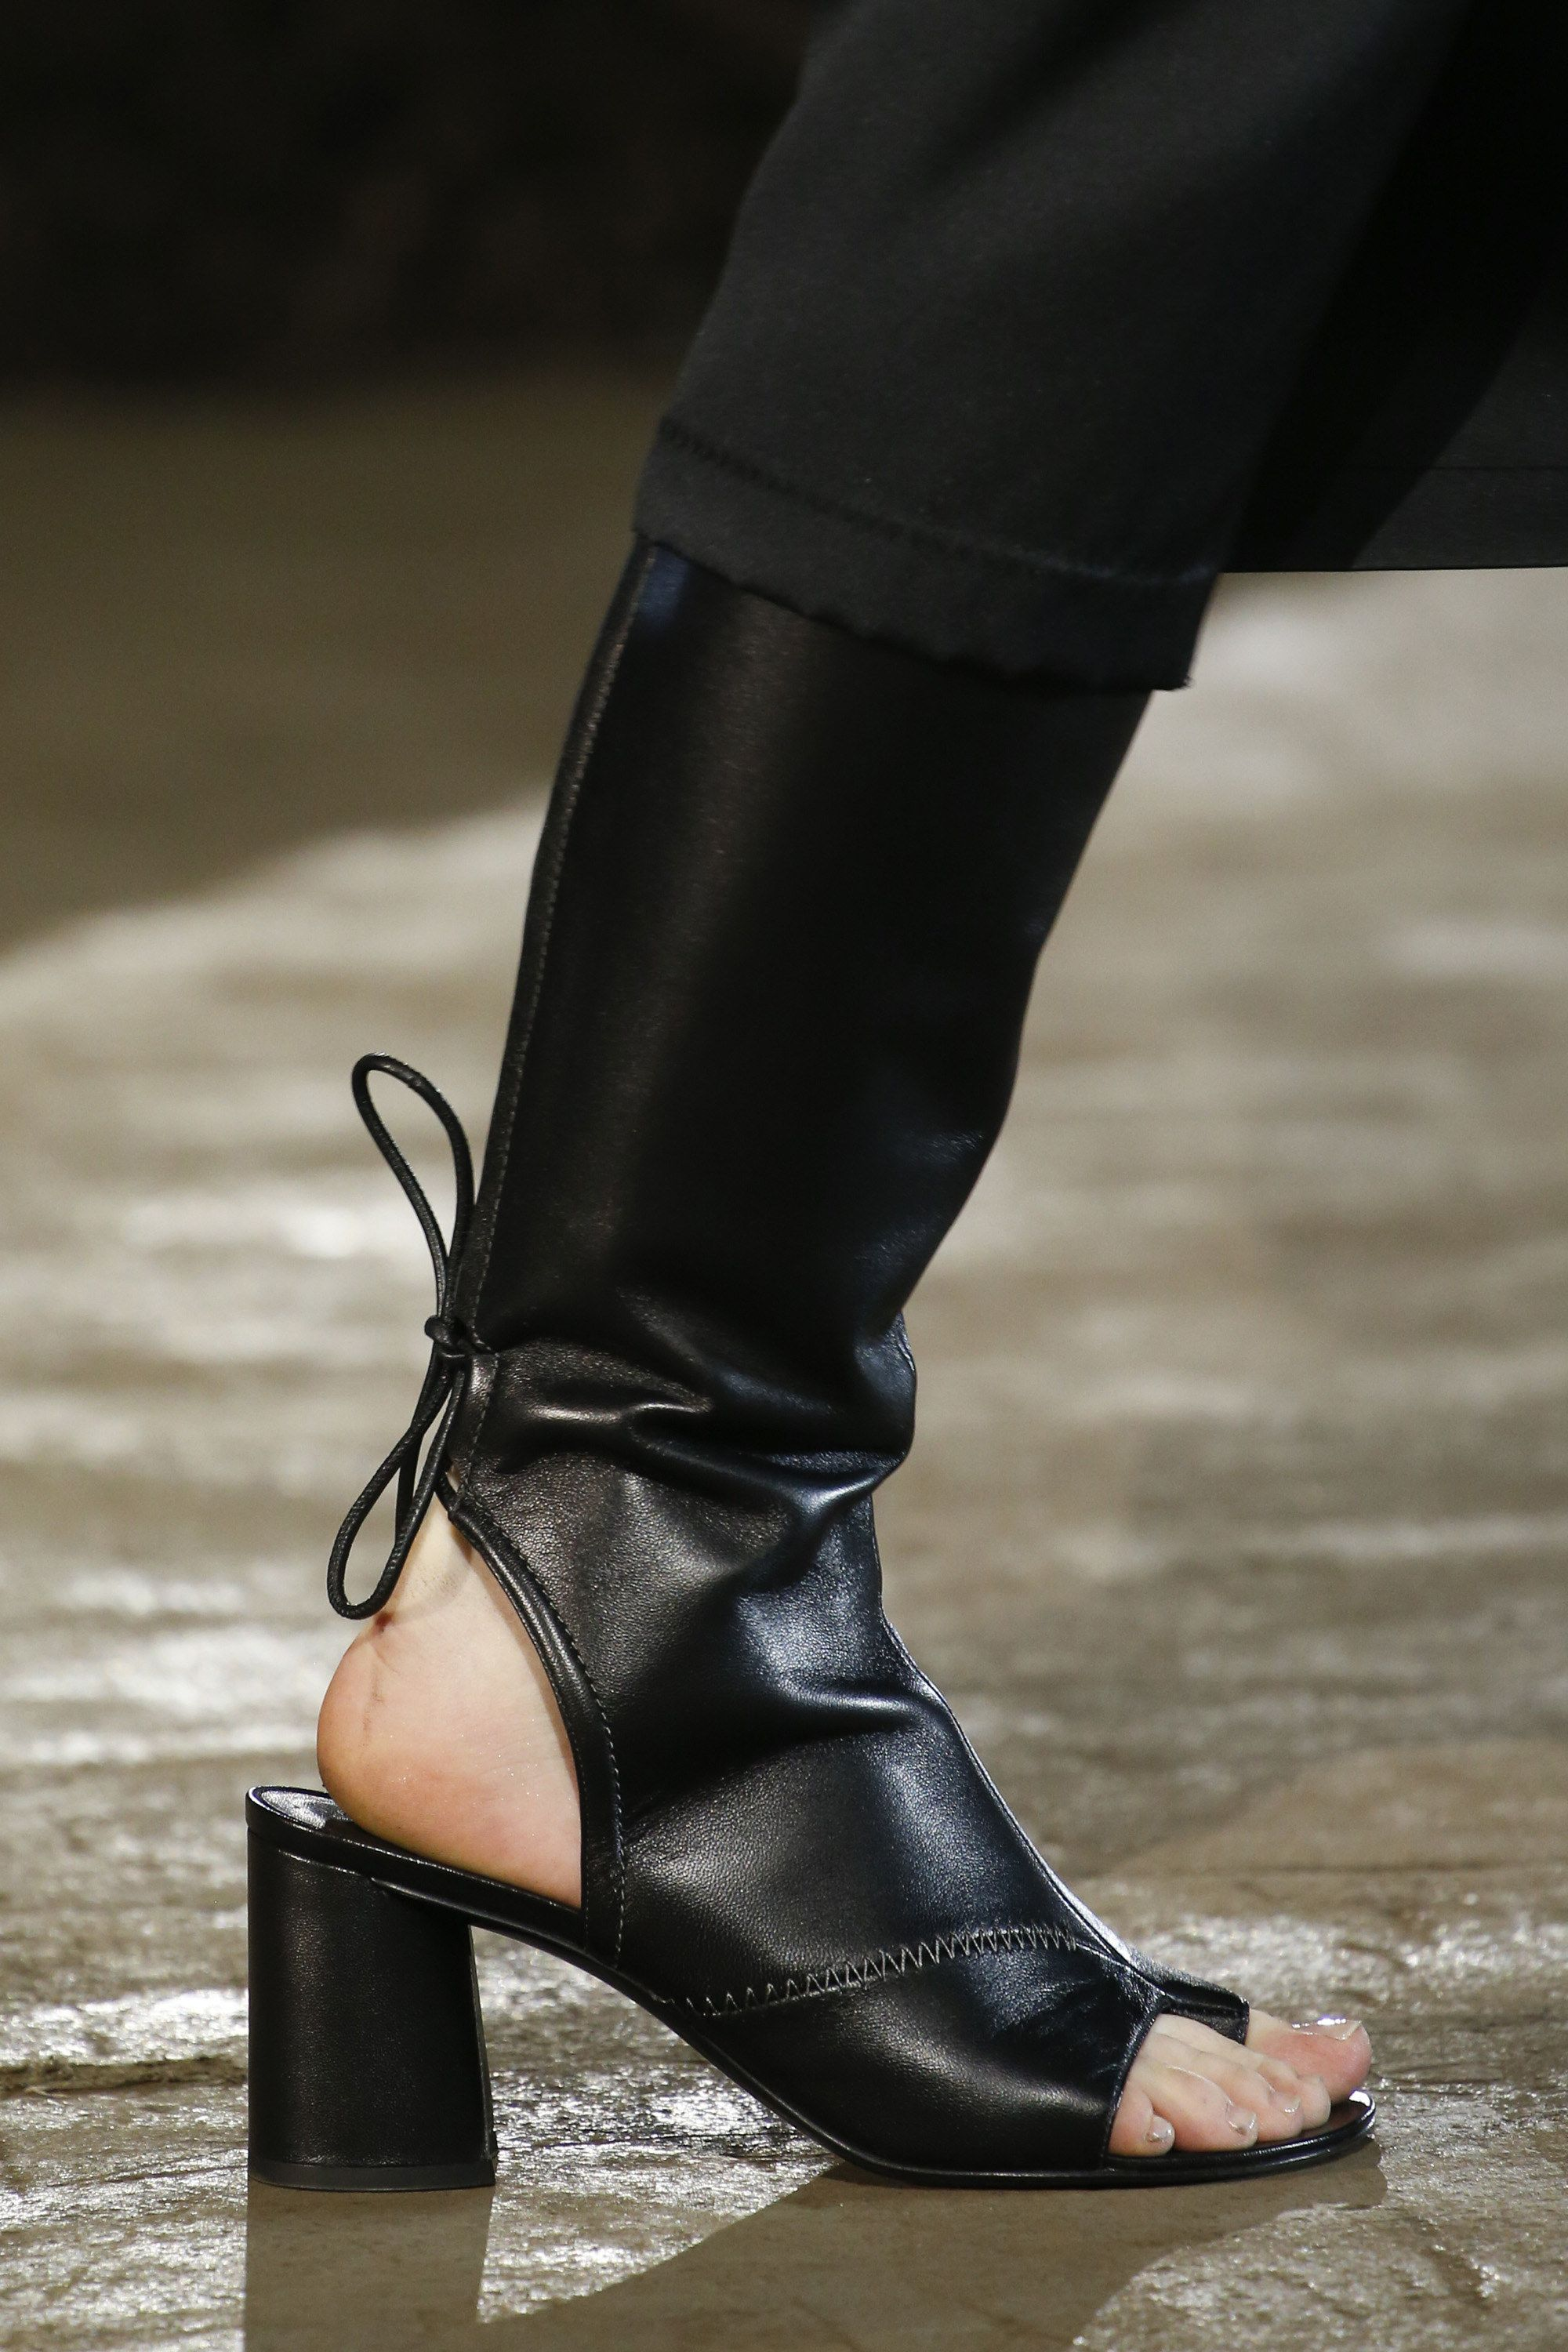 3.1 Phillip Lim Spring 2016 Ready-to-Wear Accessories Photos - Vogue b293c74f47fa1